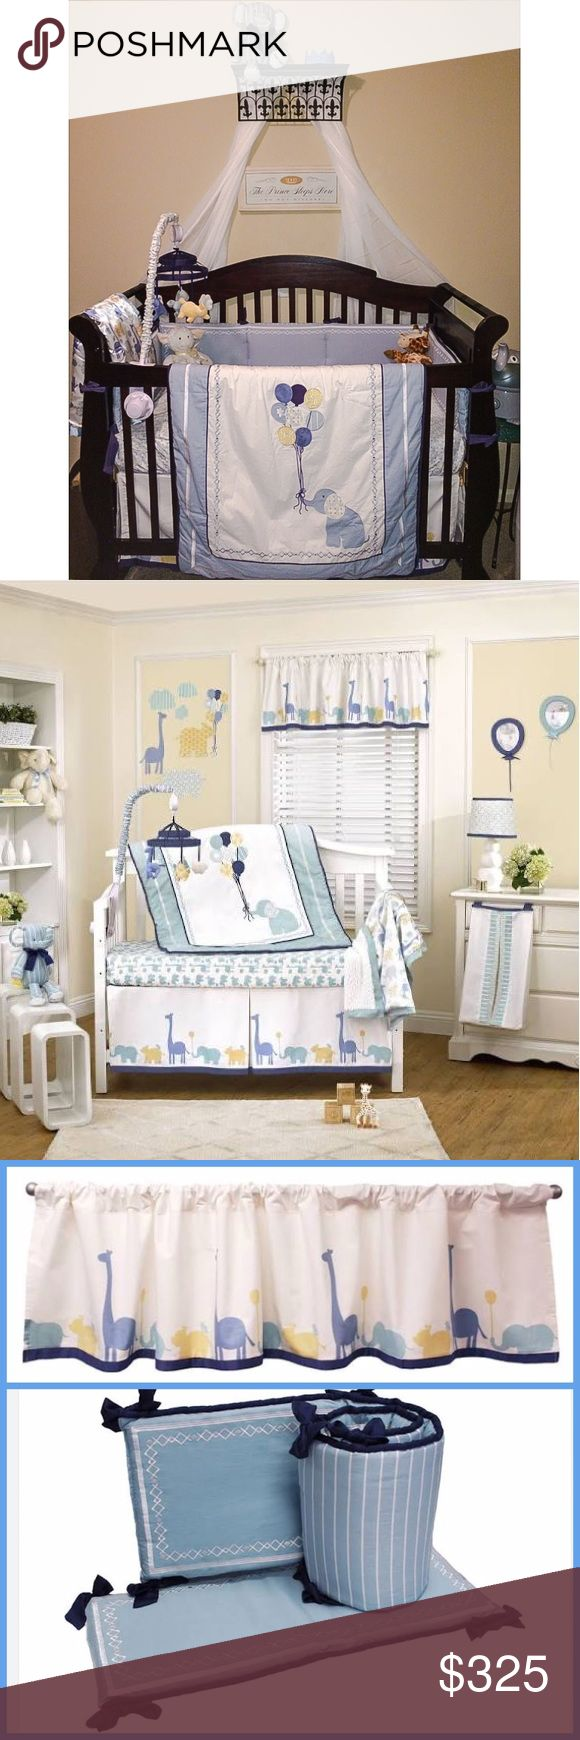 Petit Tresor Happy Animals Nursery bedding &decor The stylish Petit Tresor Happy Animals bedding set & matching decor present a unique combination of traditional & eclectic patterns w/contemporary design elements. Set includes quilt, crib skirt, fitted sheets, bumper, matching balloon frames, plush elephant, mobile, lamp shade & 2 window valances. An arrangement of several shades of blue & crisp white w/accents of navy blue & yellow creates a delightful nursery. Everything is very gently…